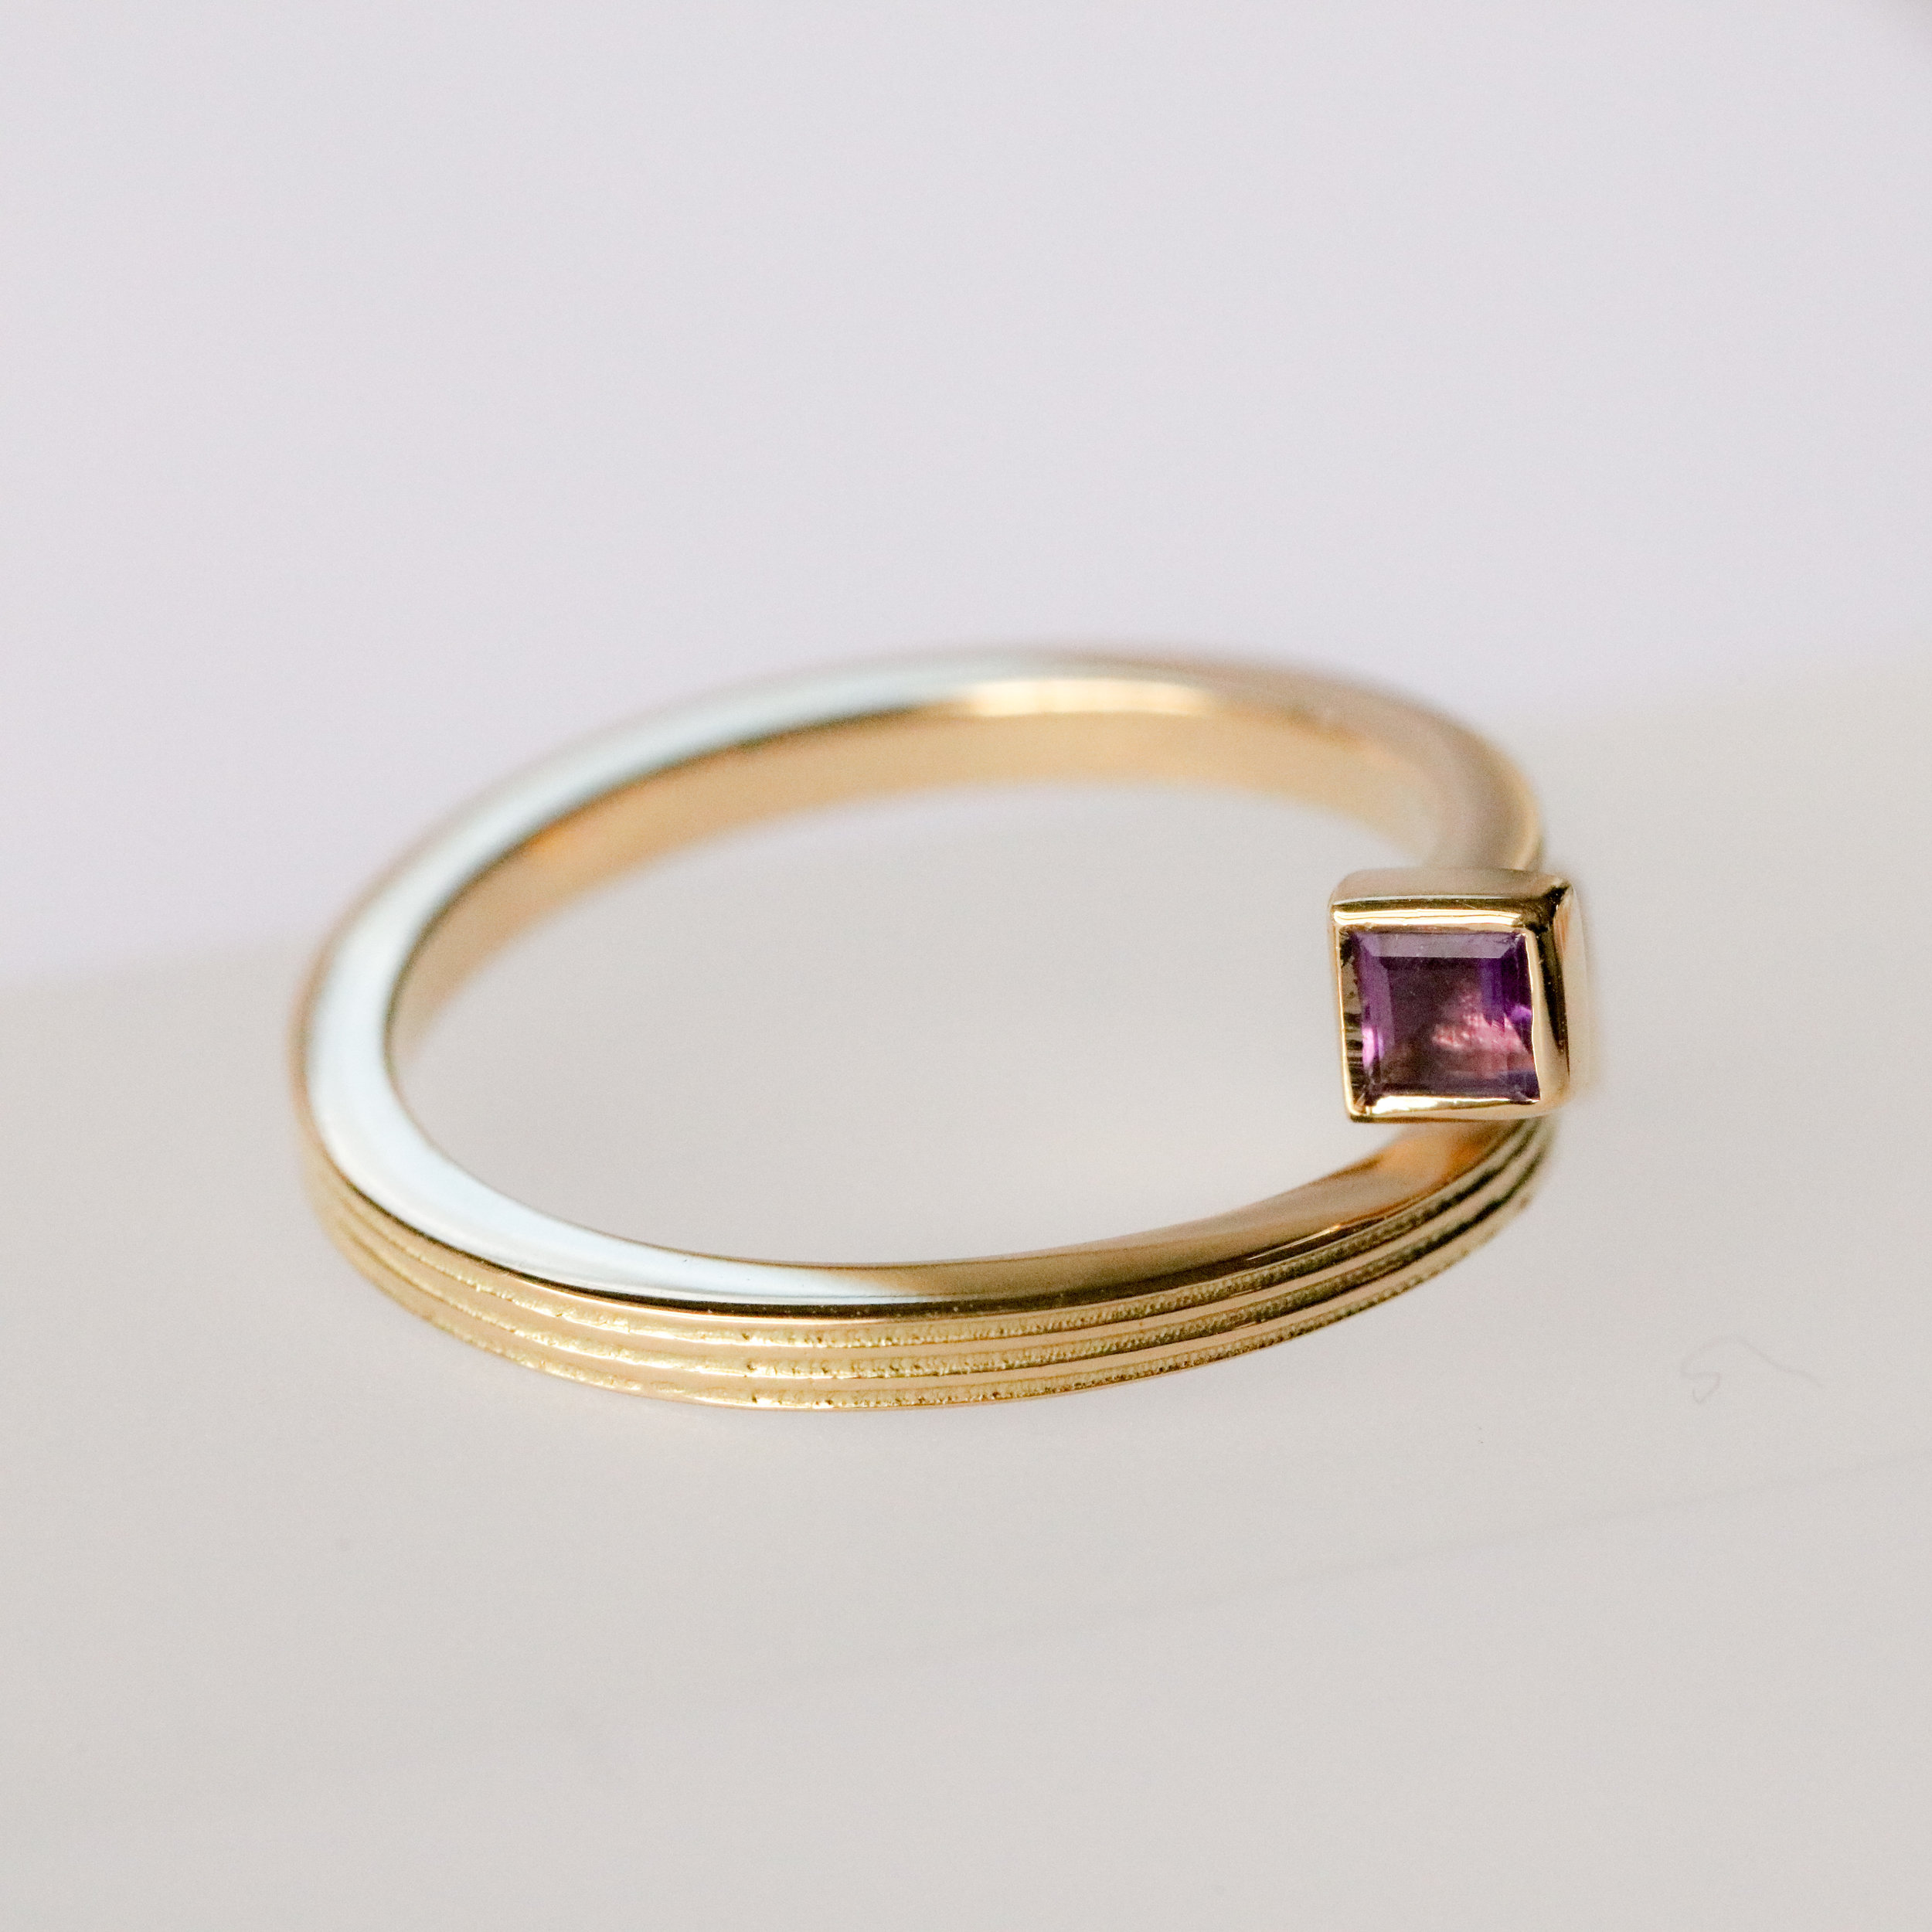 Helical Ring in 18ct yellow gold, set with amethyst